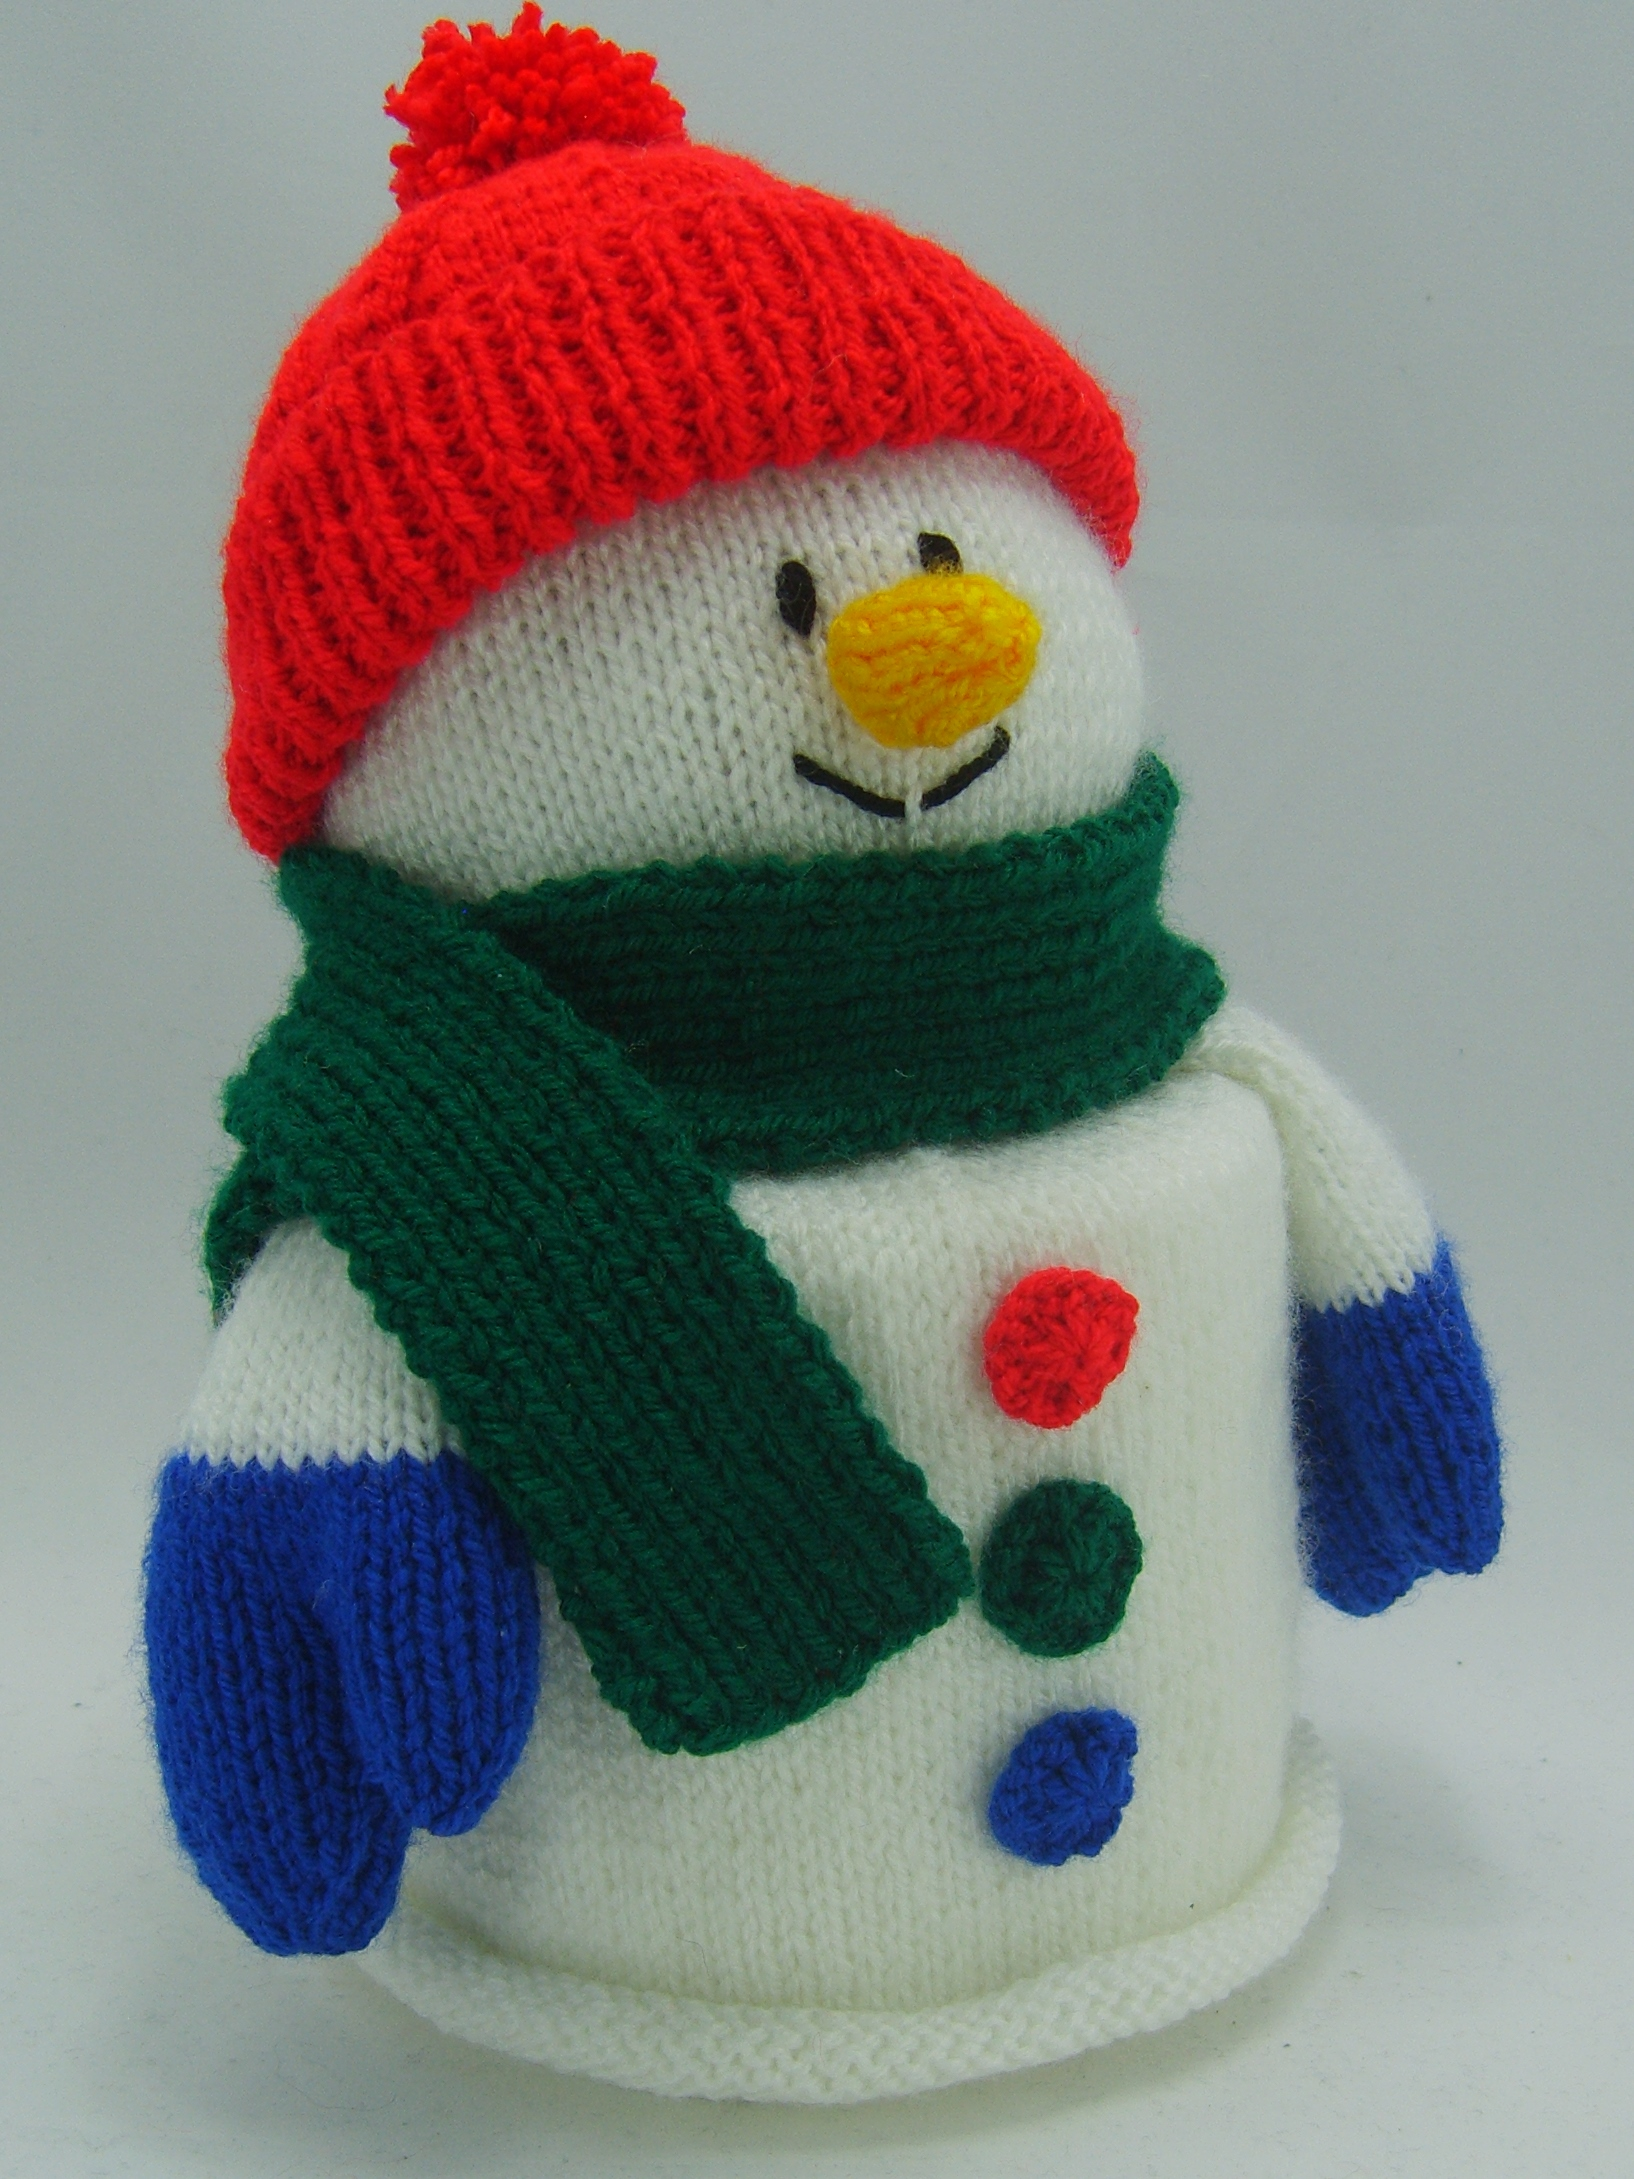 Snowman Toilet Roll Cover Knitting Pattern – Knitting by Post